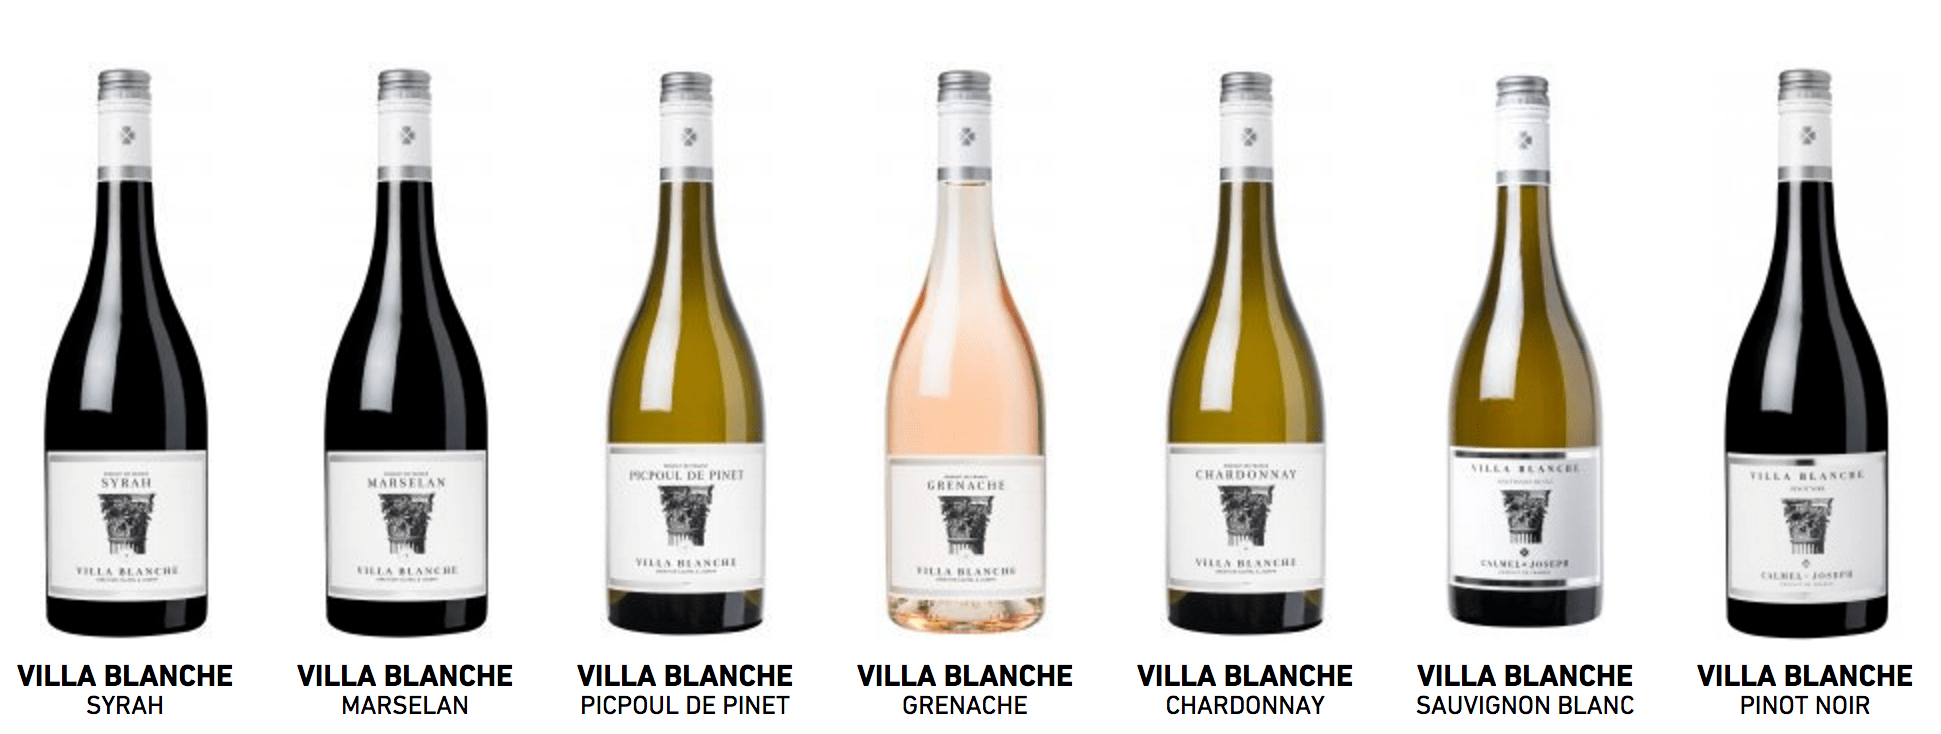 A selection of the Ville Blanche range will be available at Convenanza.